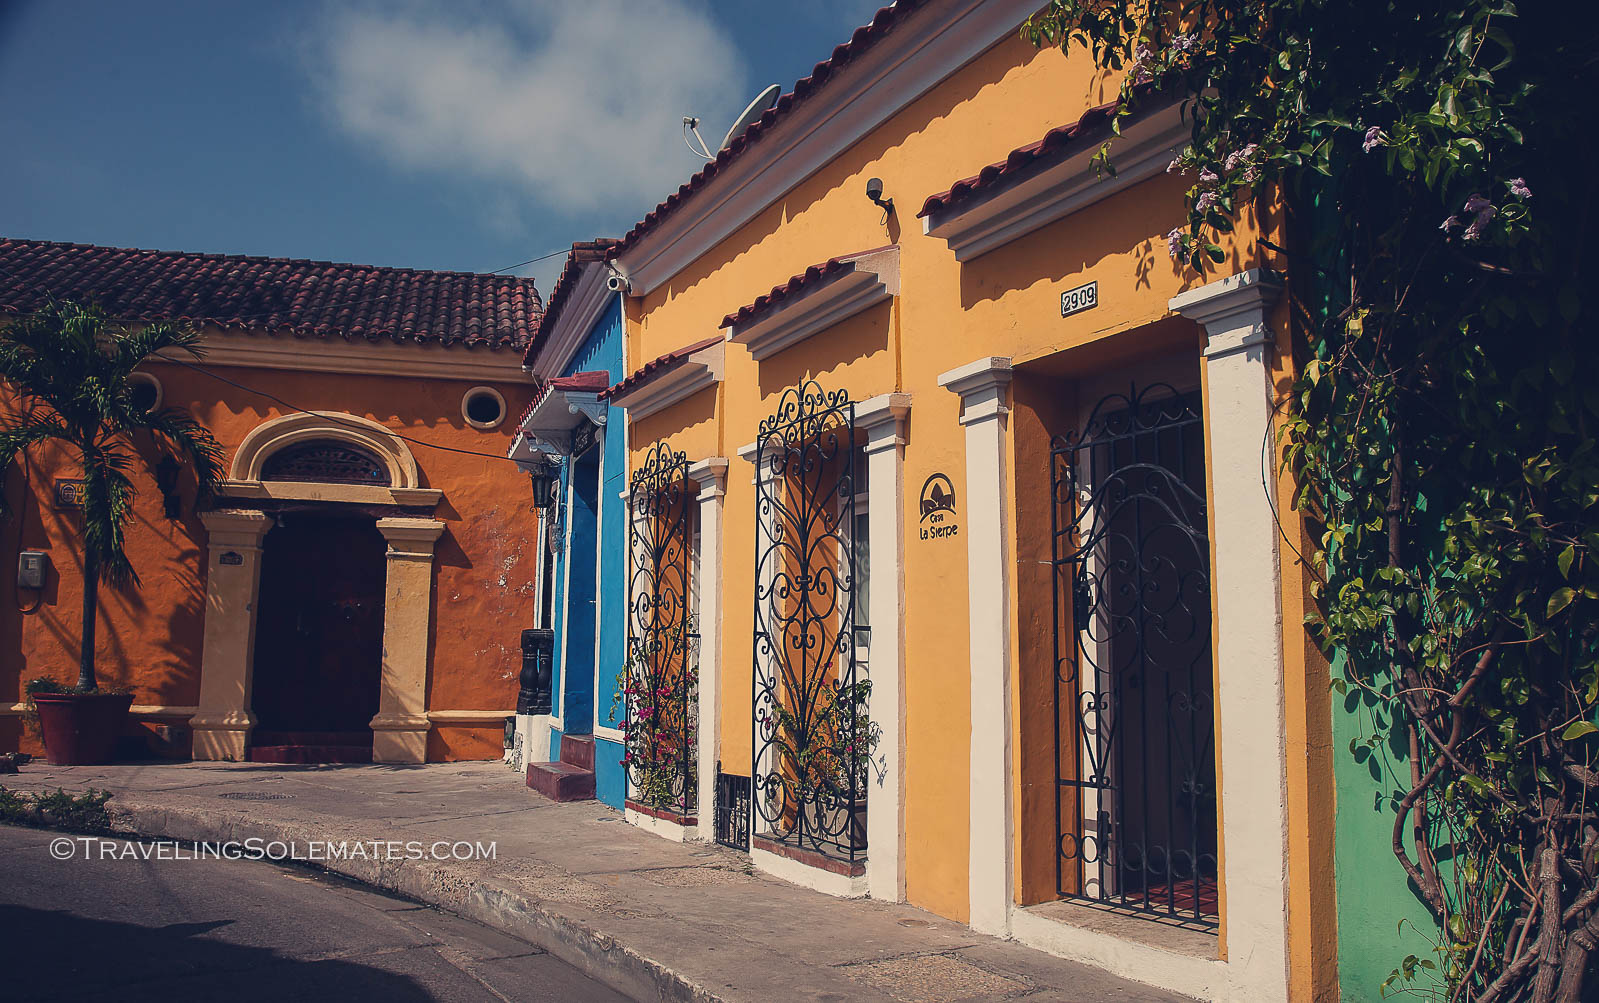 A guesthouse in Getsemani, Cartagena, Colombia